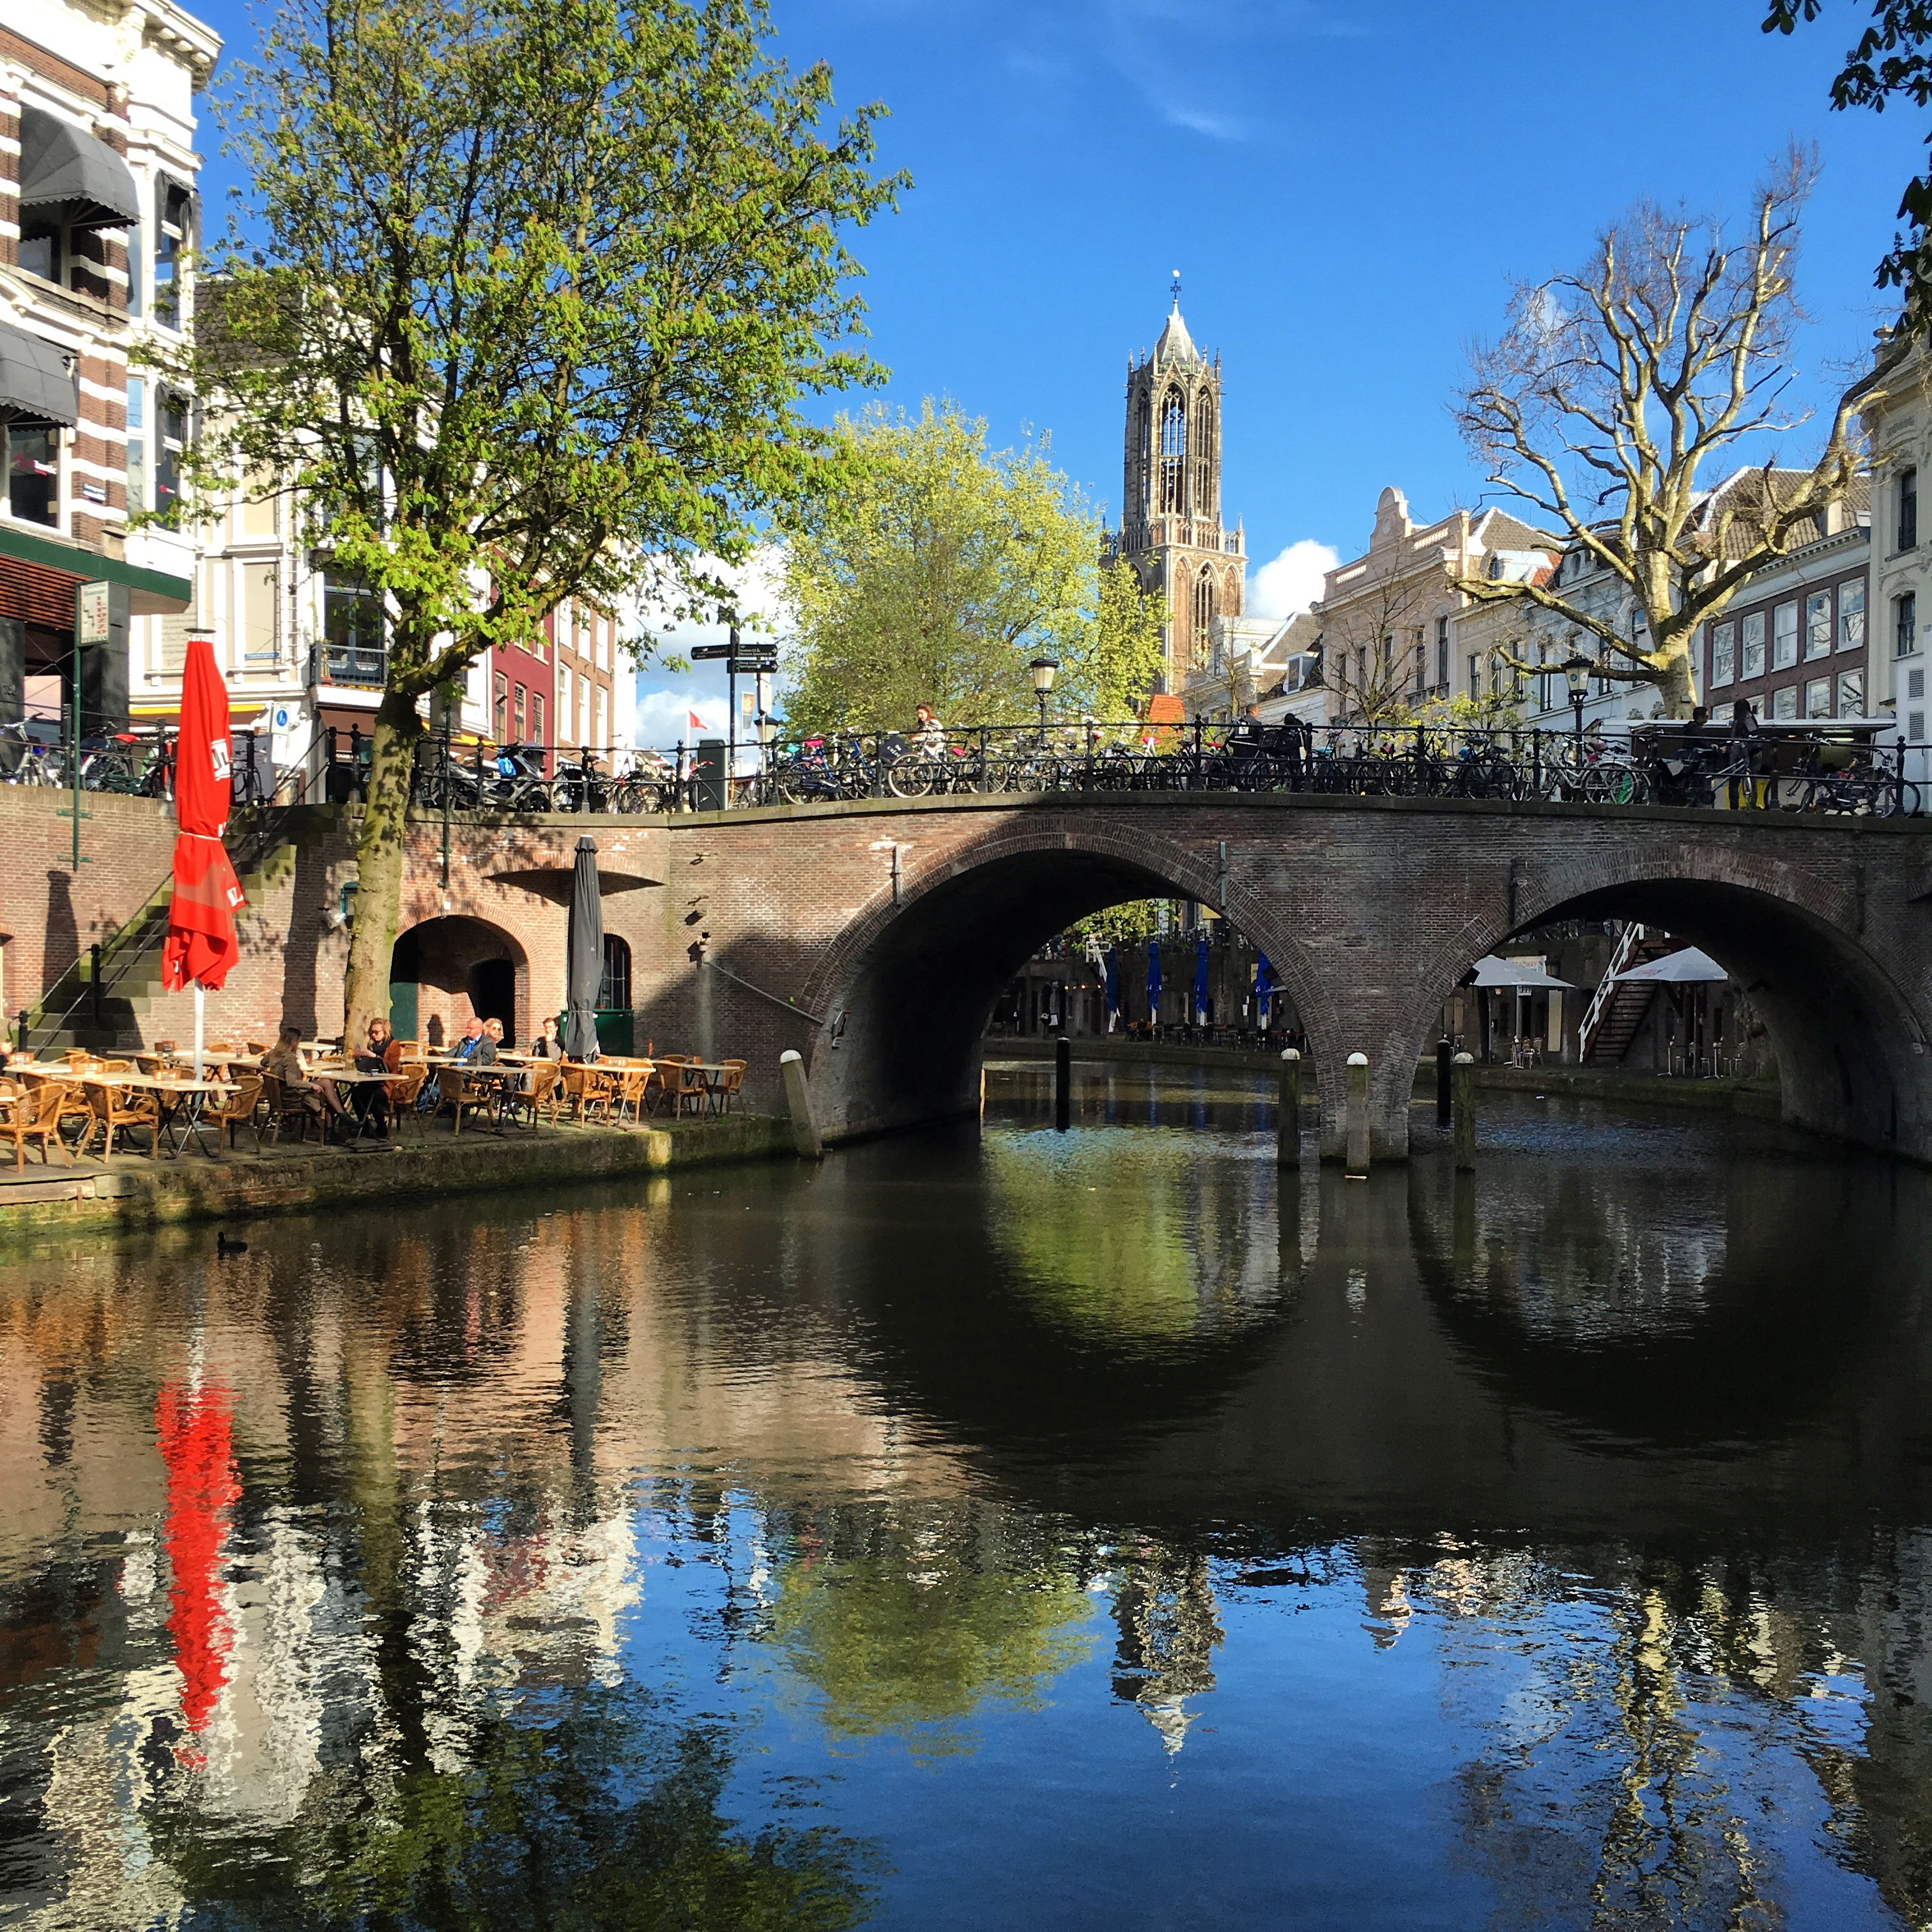 Primark Amersfoort 21 Places To Visit In The Netherlands That Aren T Amsterdam